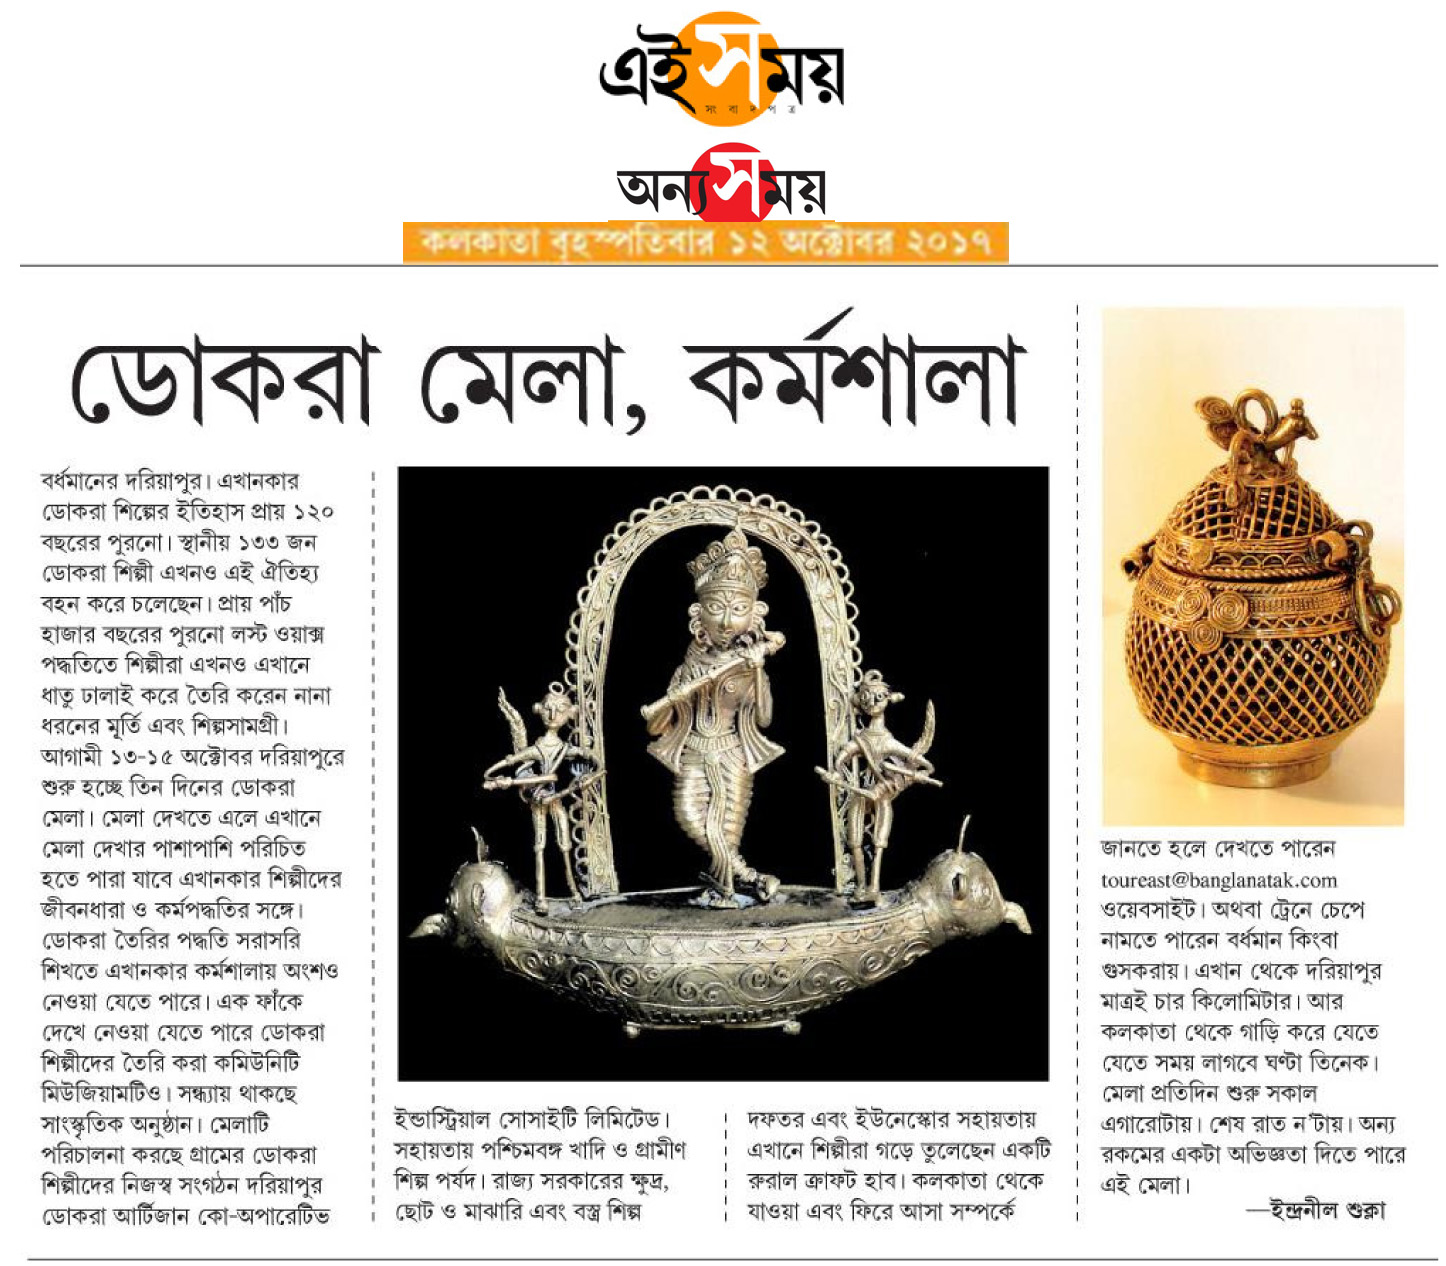 Dariyapur Dokra Mela and Workshop 2017_Ei Samay 12-10-2017